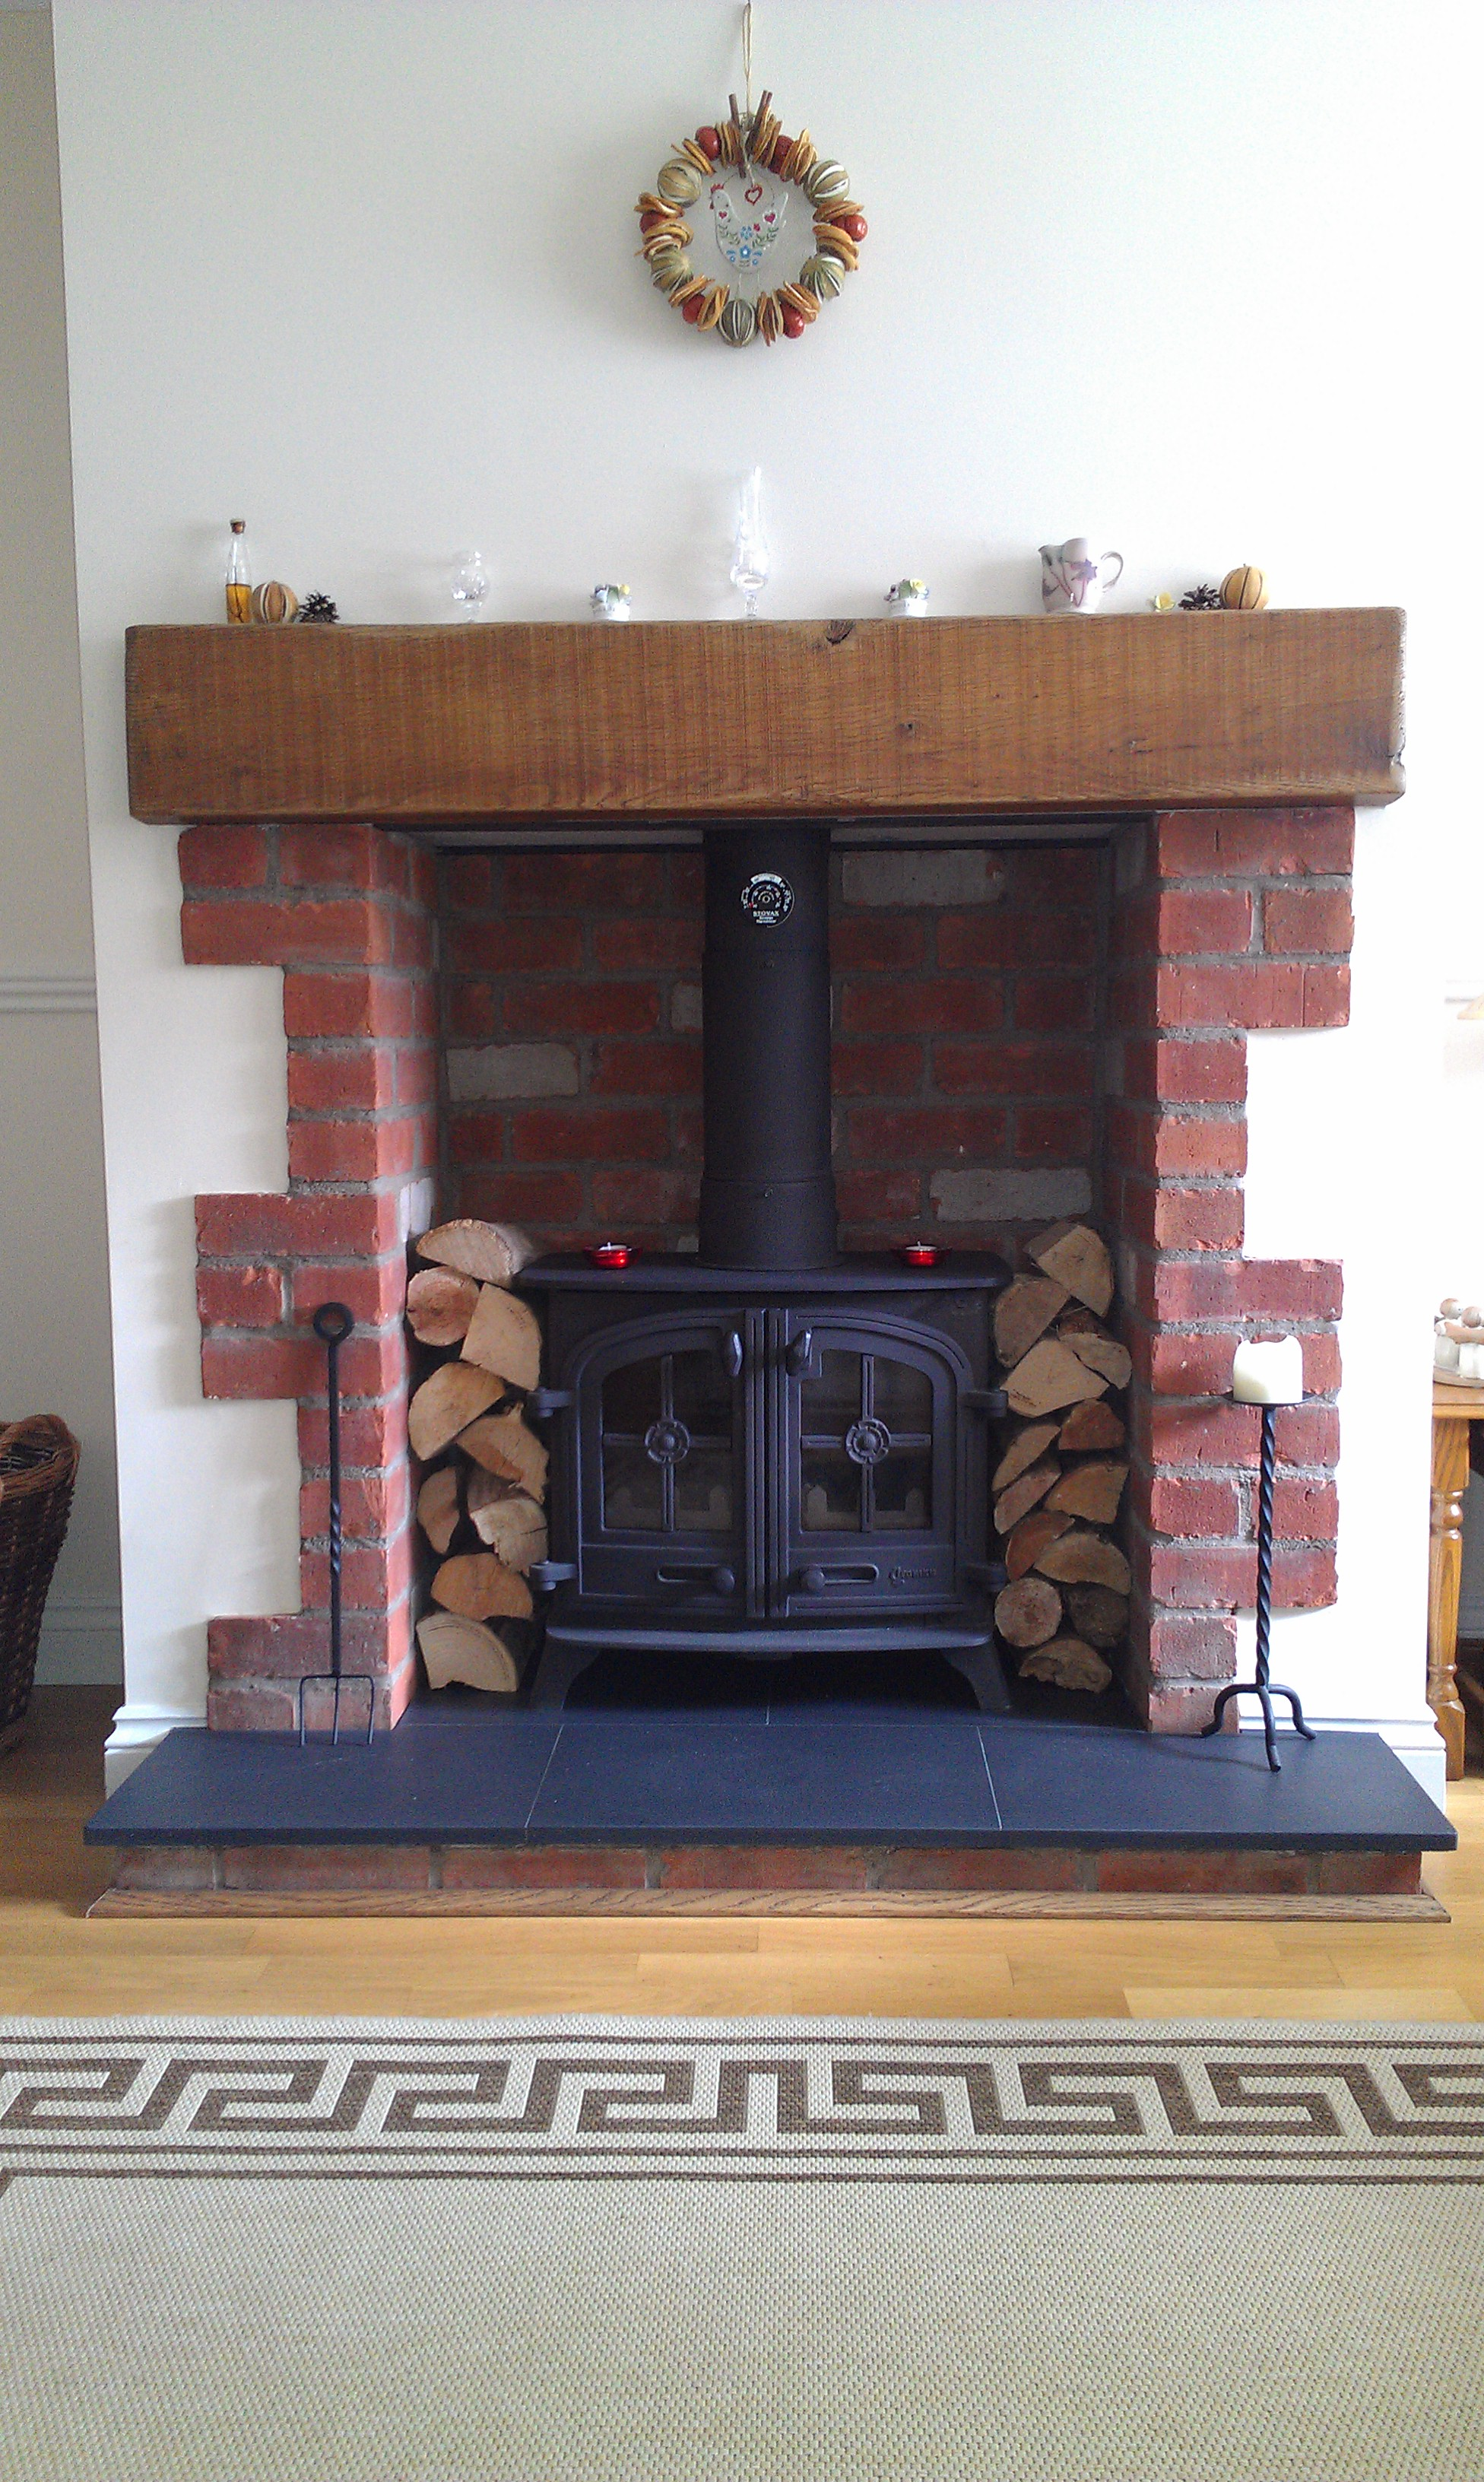 Latest Work - The Chimney Man